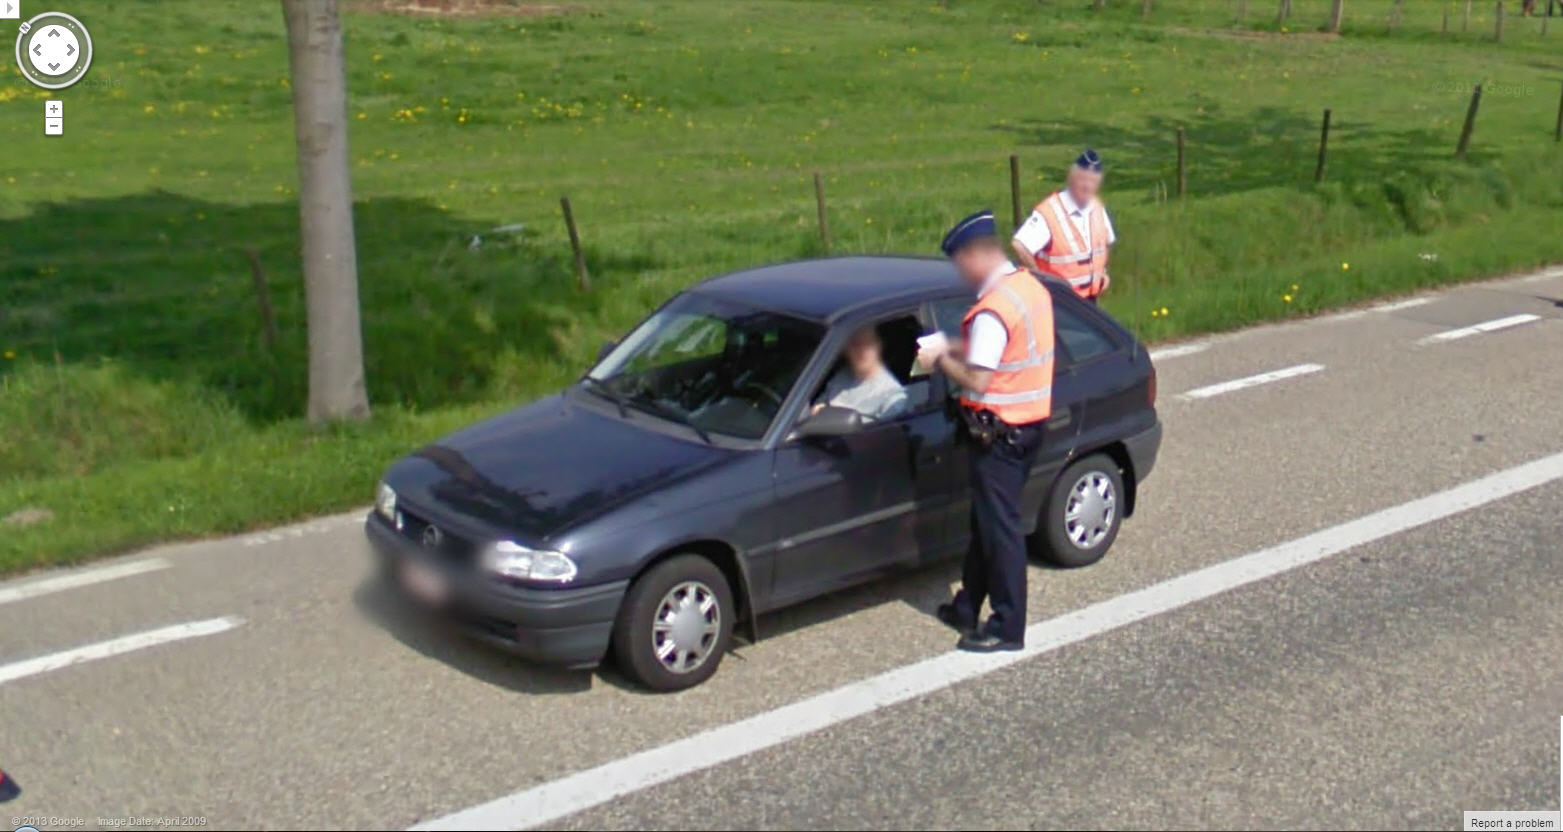 Priceless – Caught Getting a Ticket on Google Street View